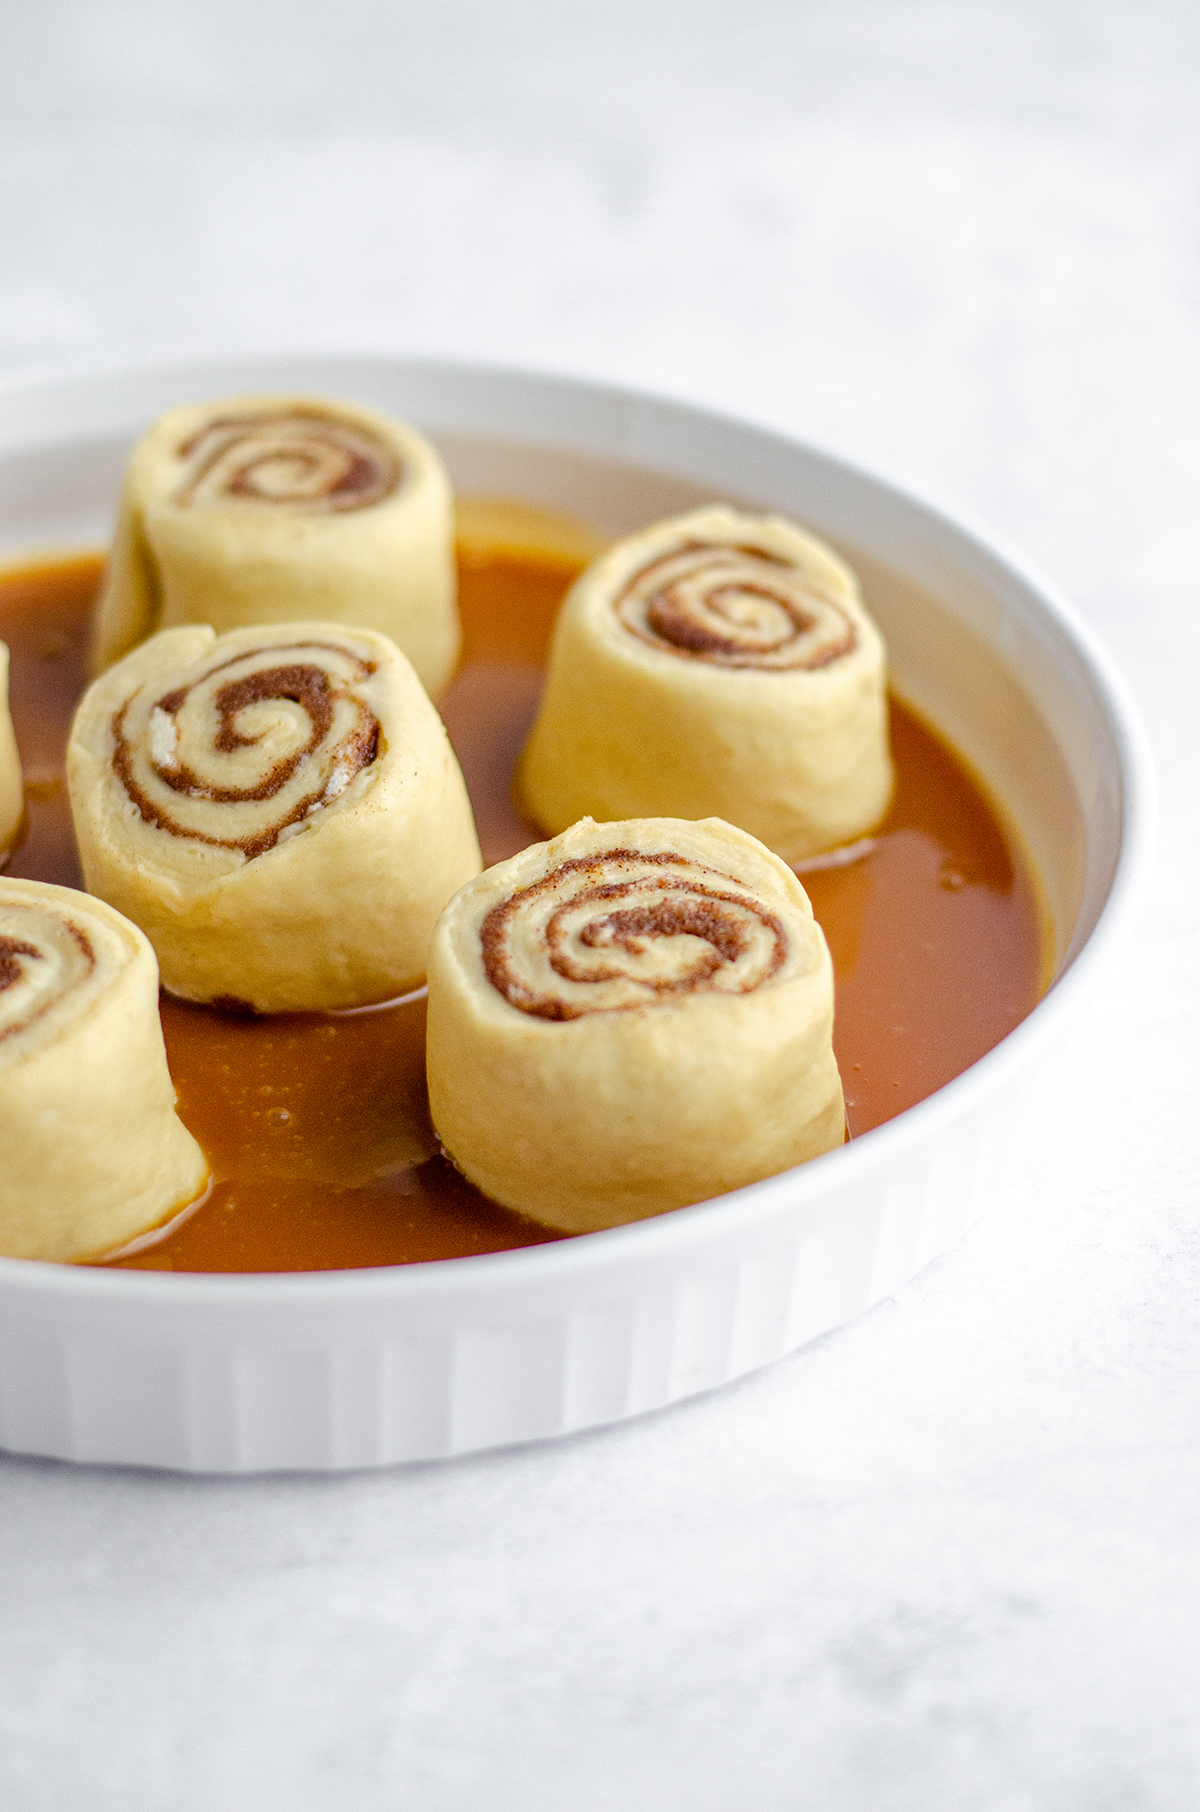 caramel roll dough in a plate with caramel sauce on the bottom ready to rise